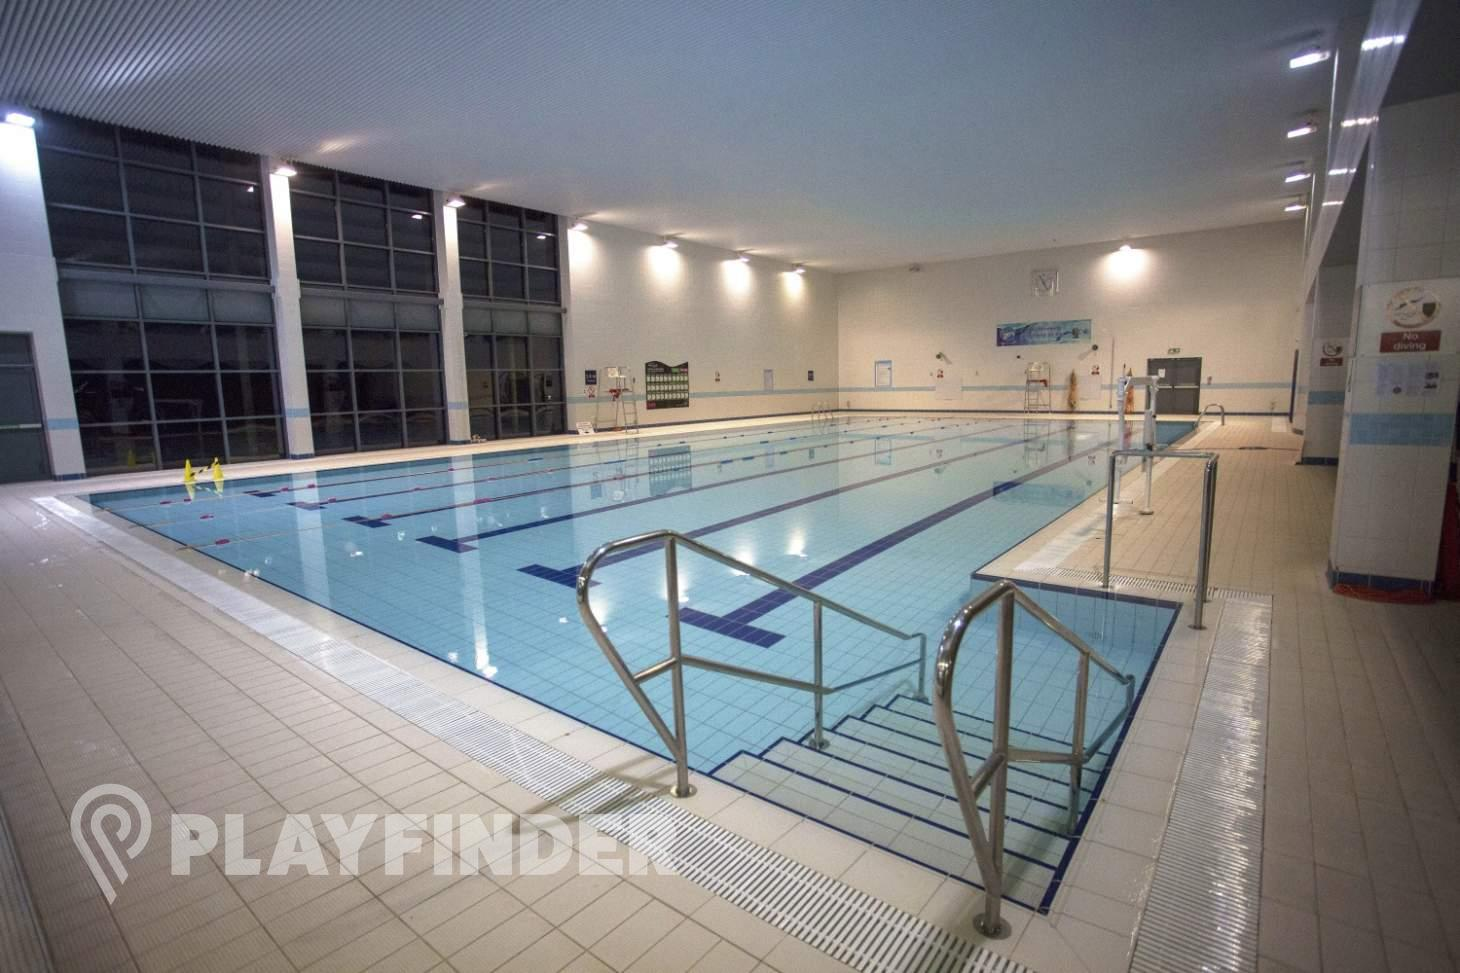 Sidcup Leisure Centre Indoor swimming pool